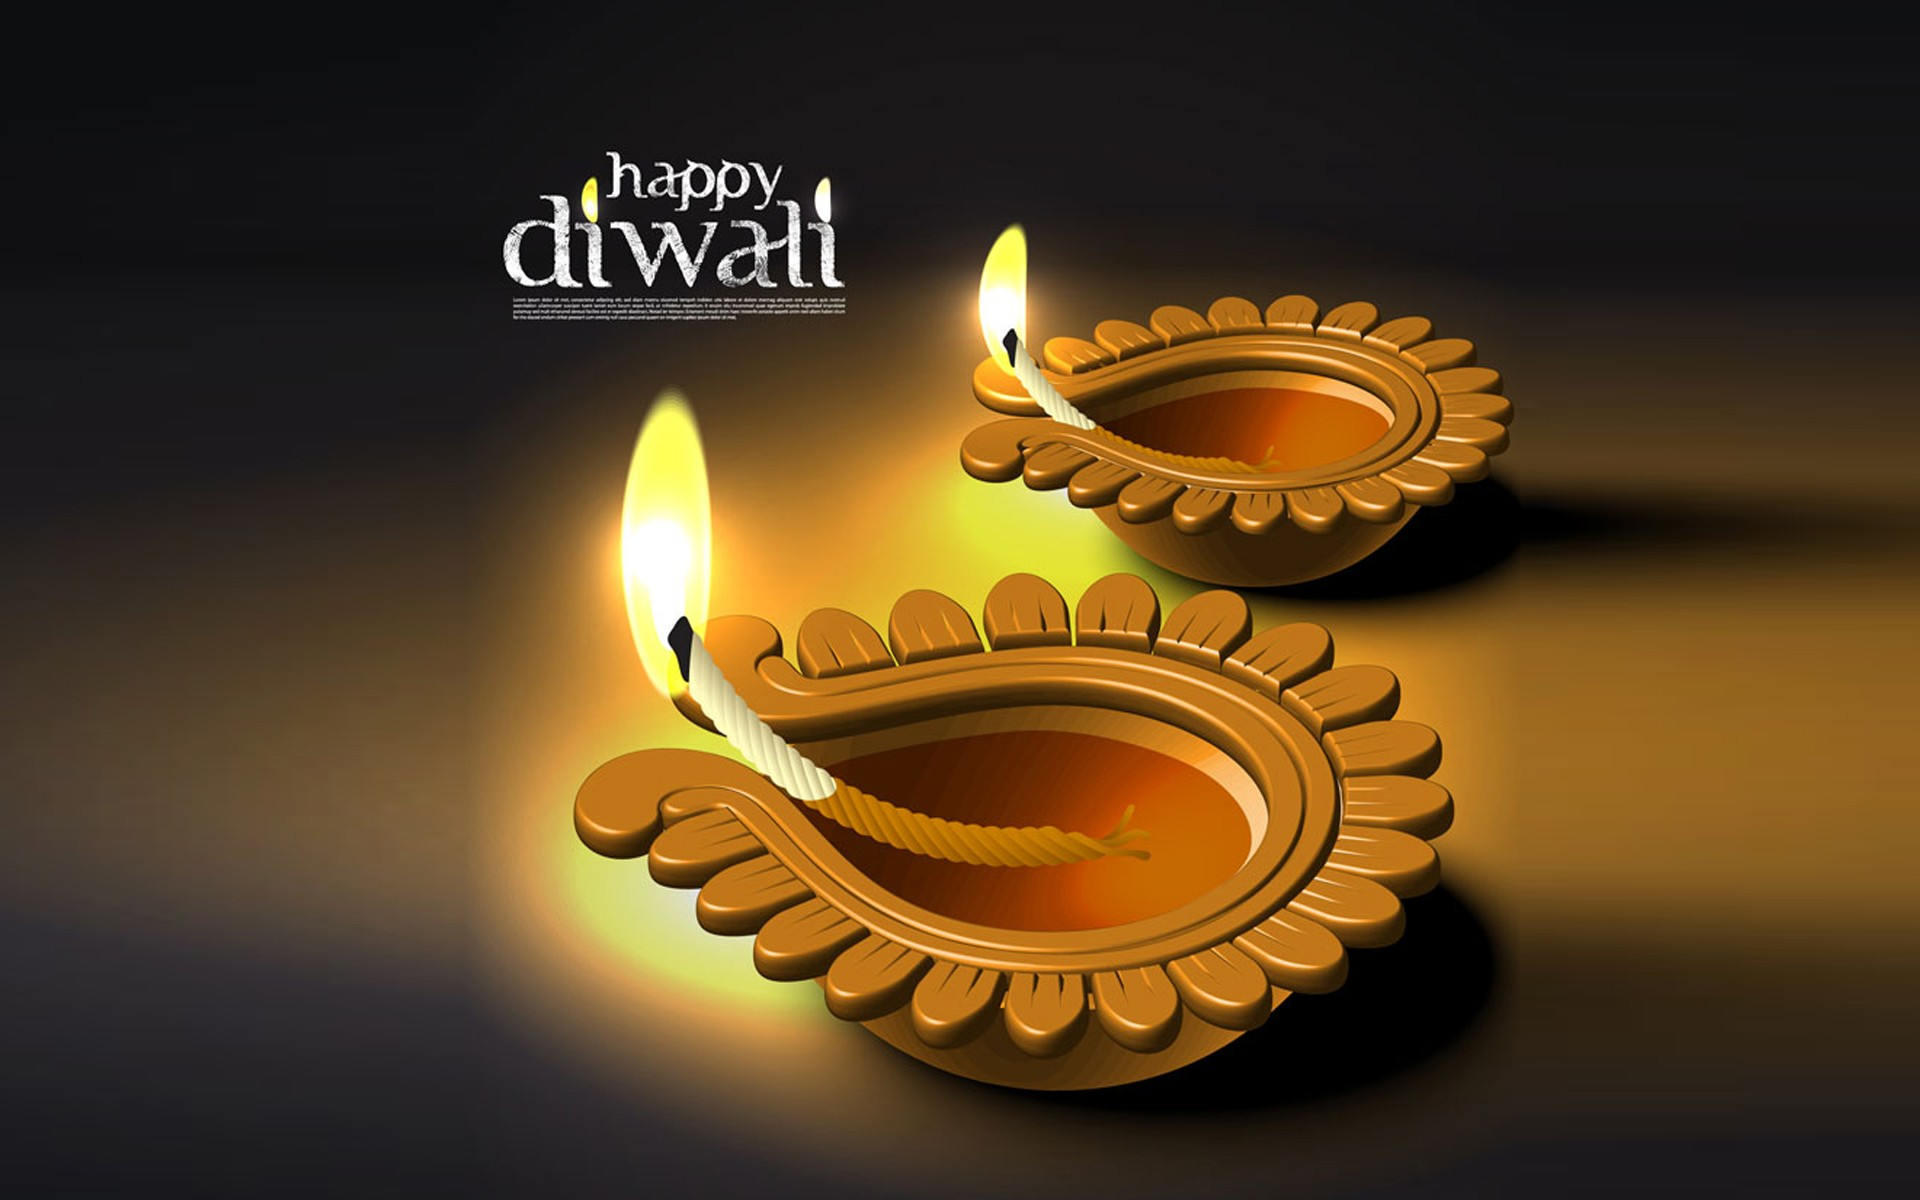 Diwali diya drawing at getdrawings free for personal use 1920x1200 diwali greeting cards drawing homemade ideas diwali greetings m4hsunfo